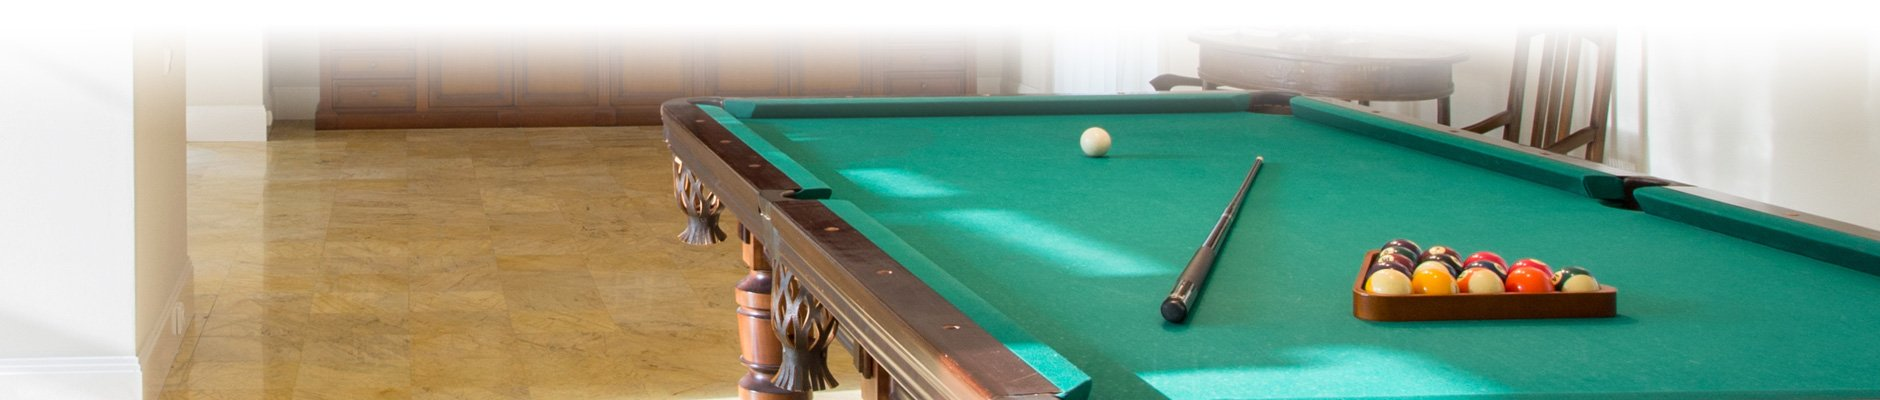 Tables THE BILLIARDS GUY - Pool table help